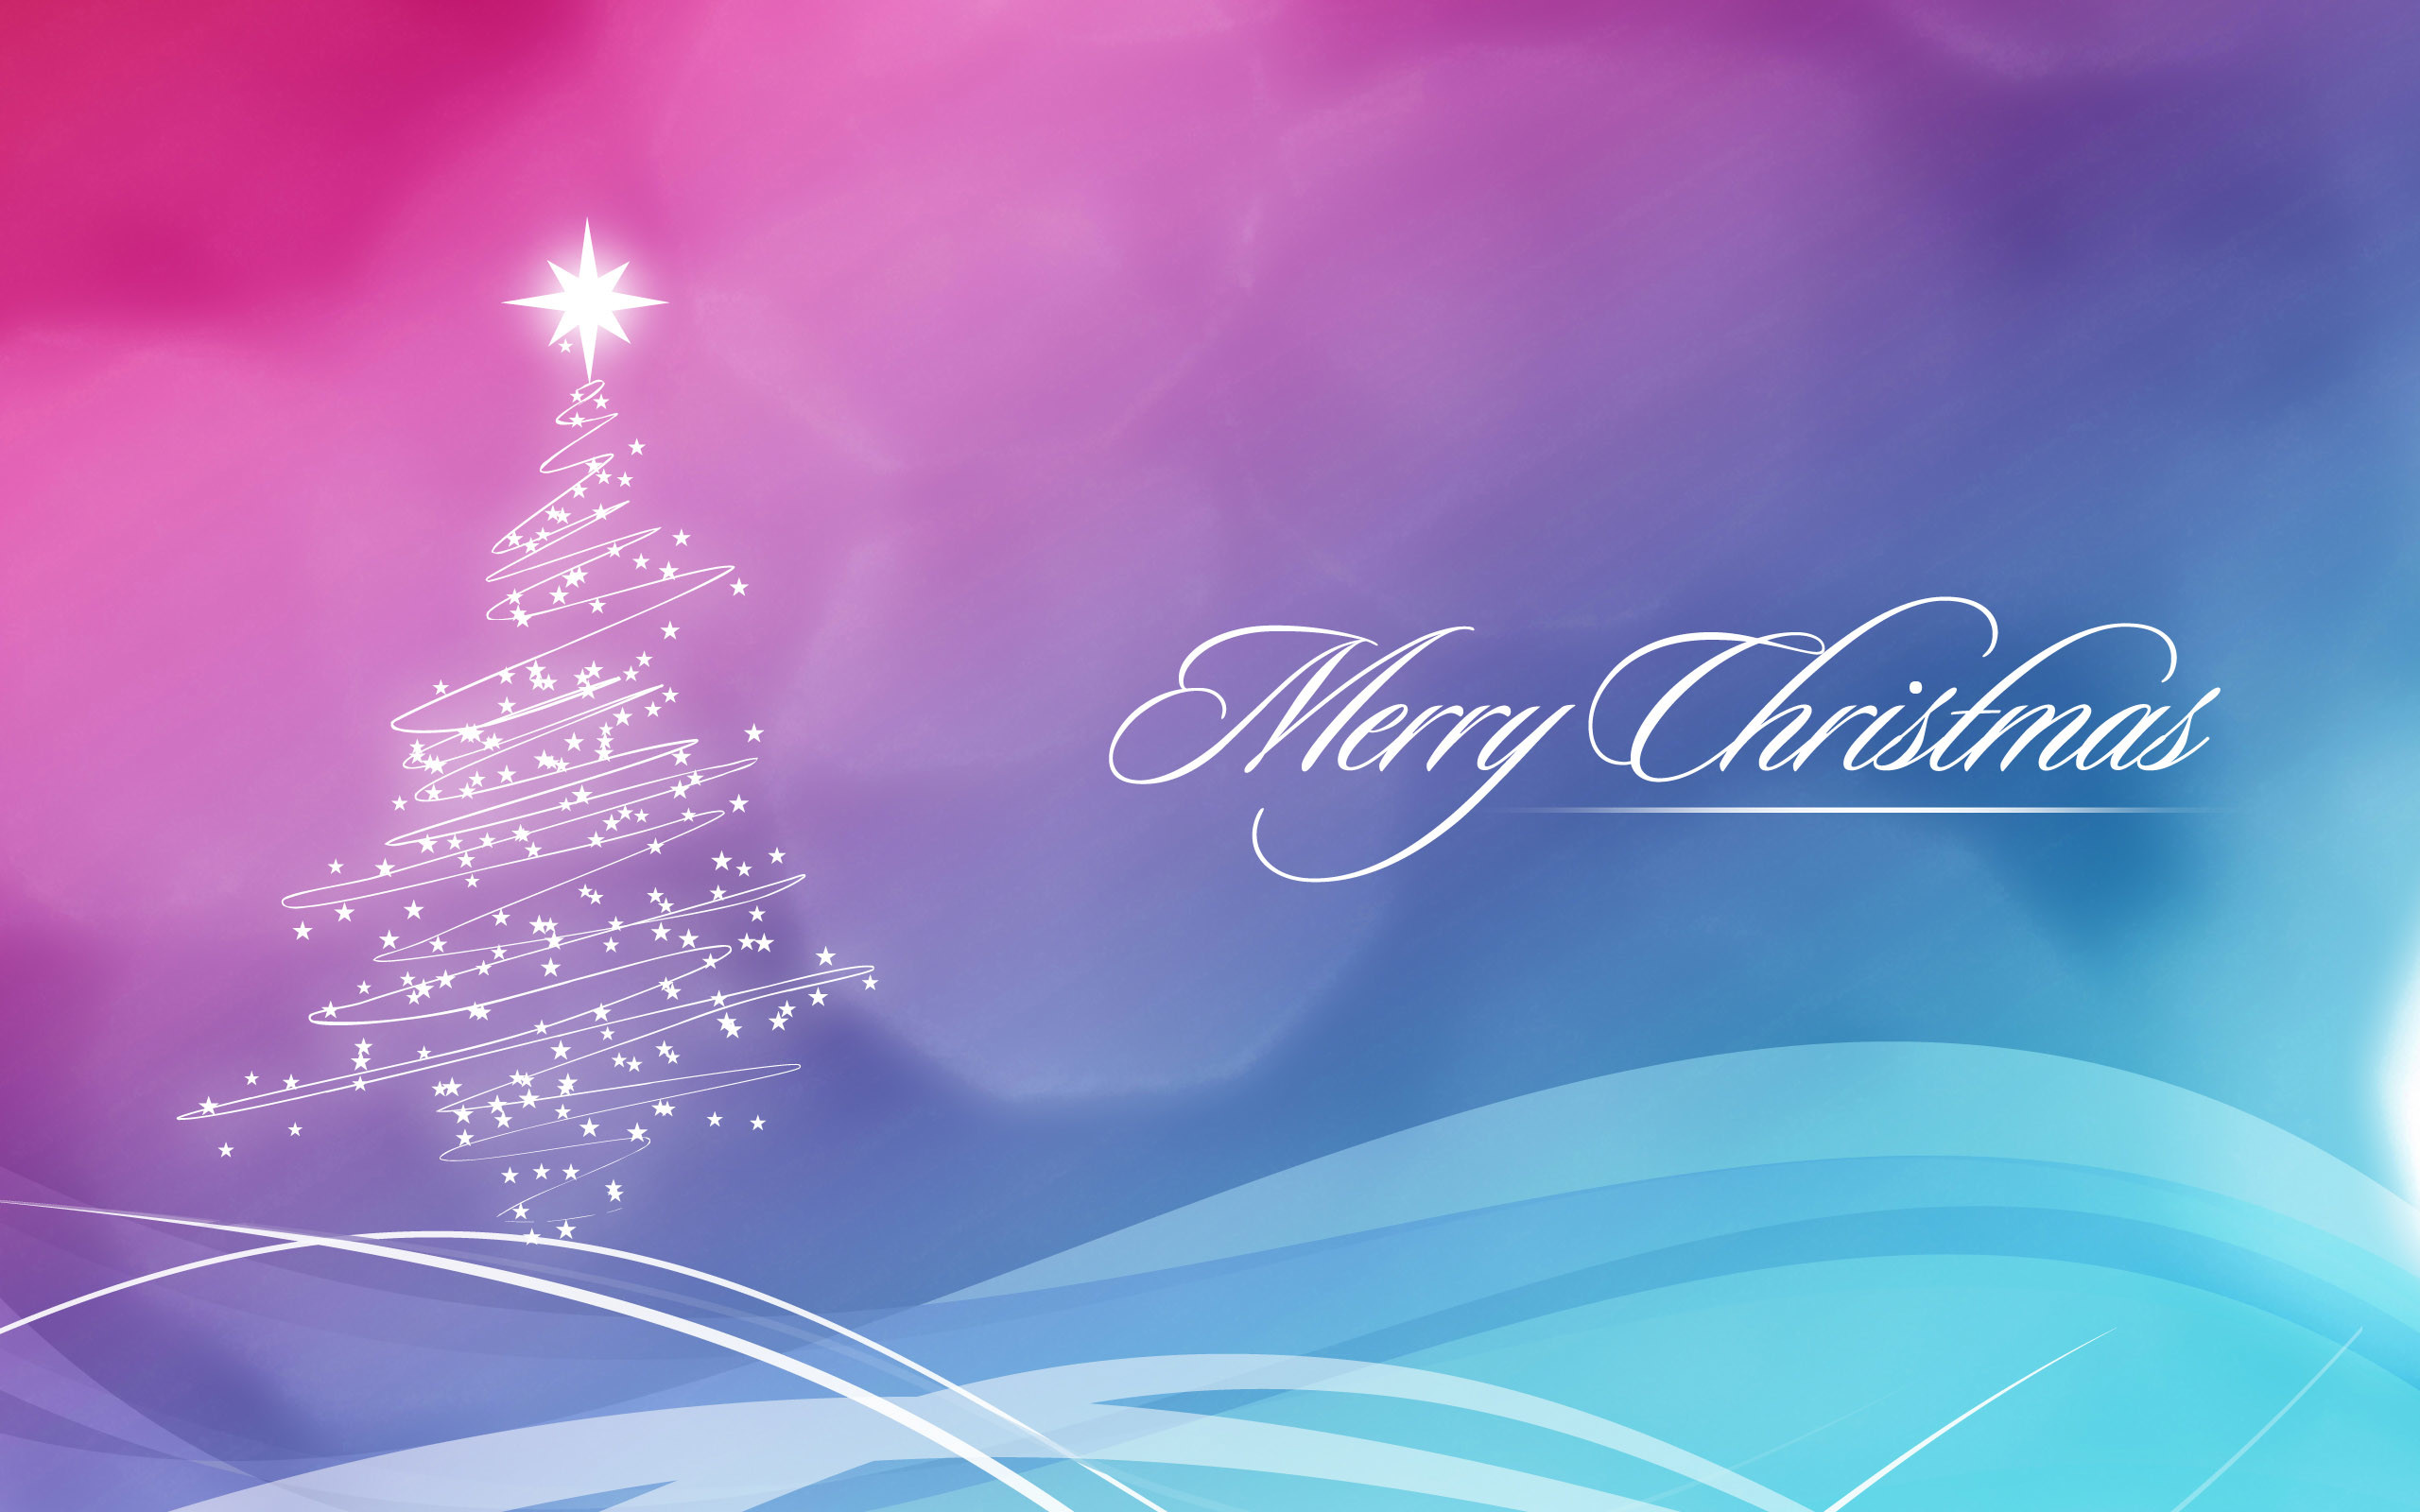 2015 Christmas computer background pictures – wallpapers, photos .